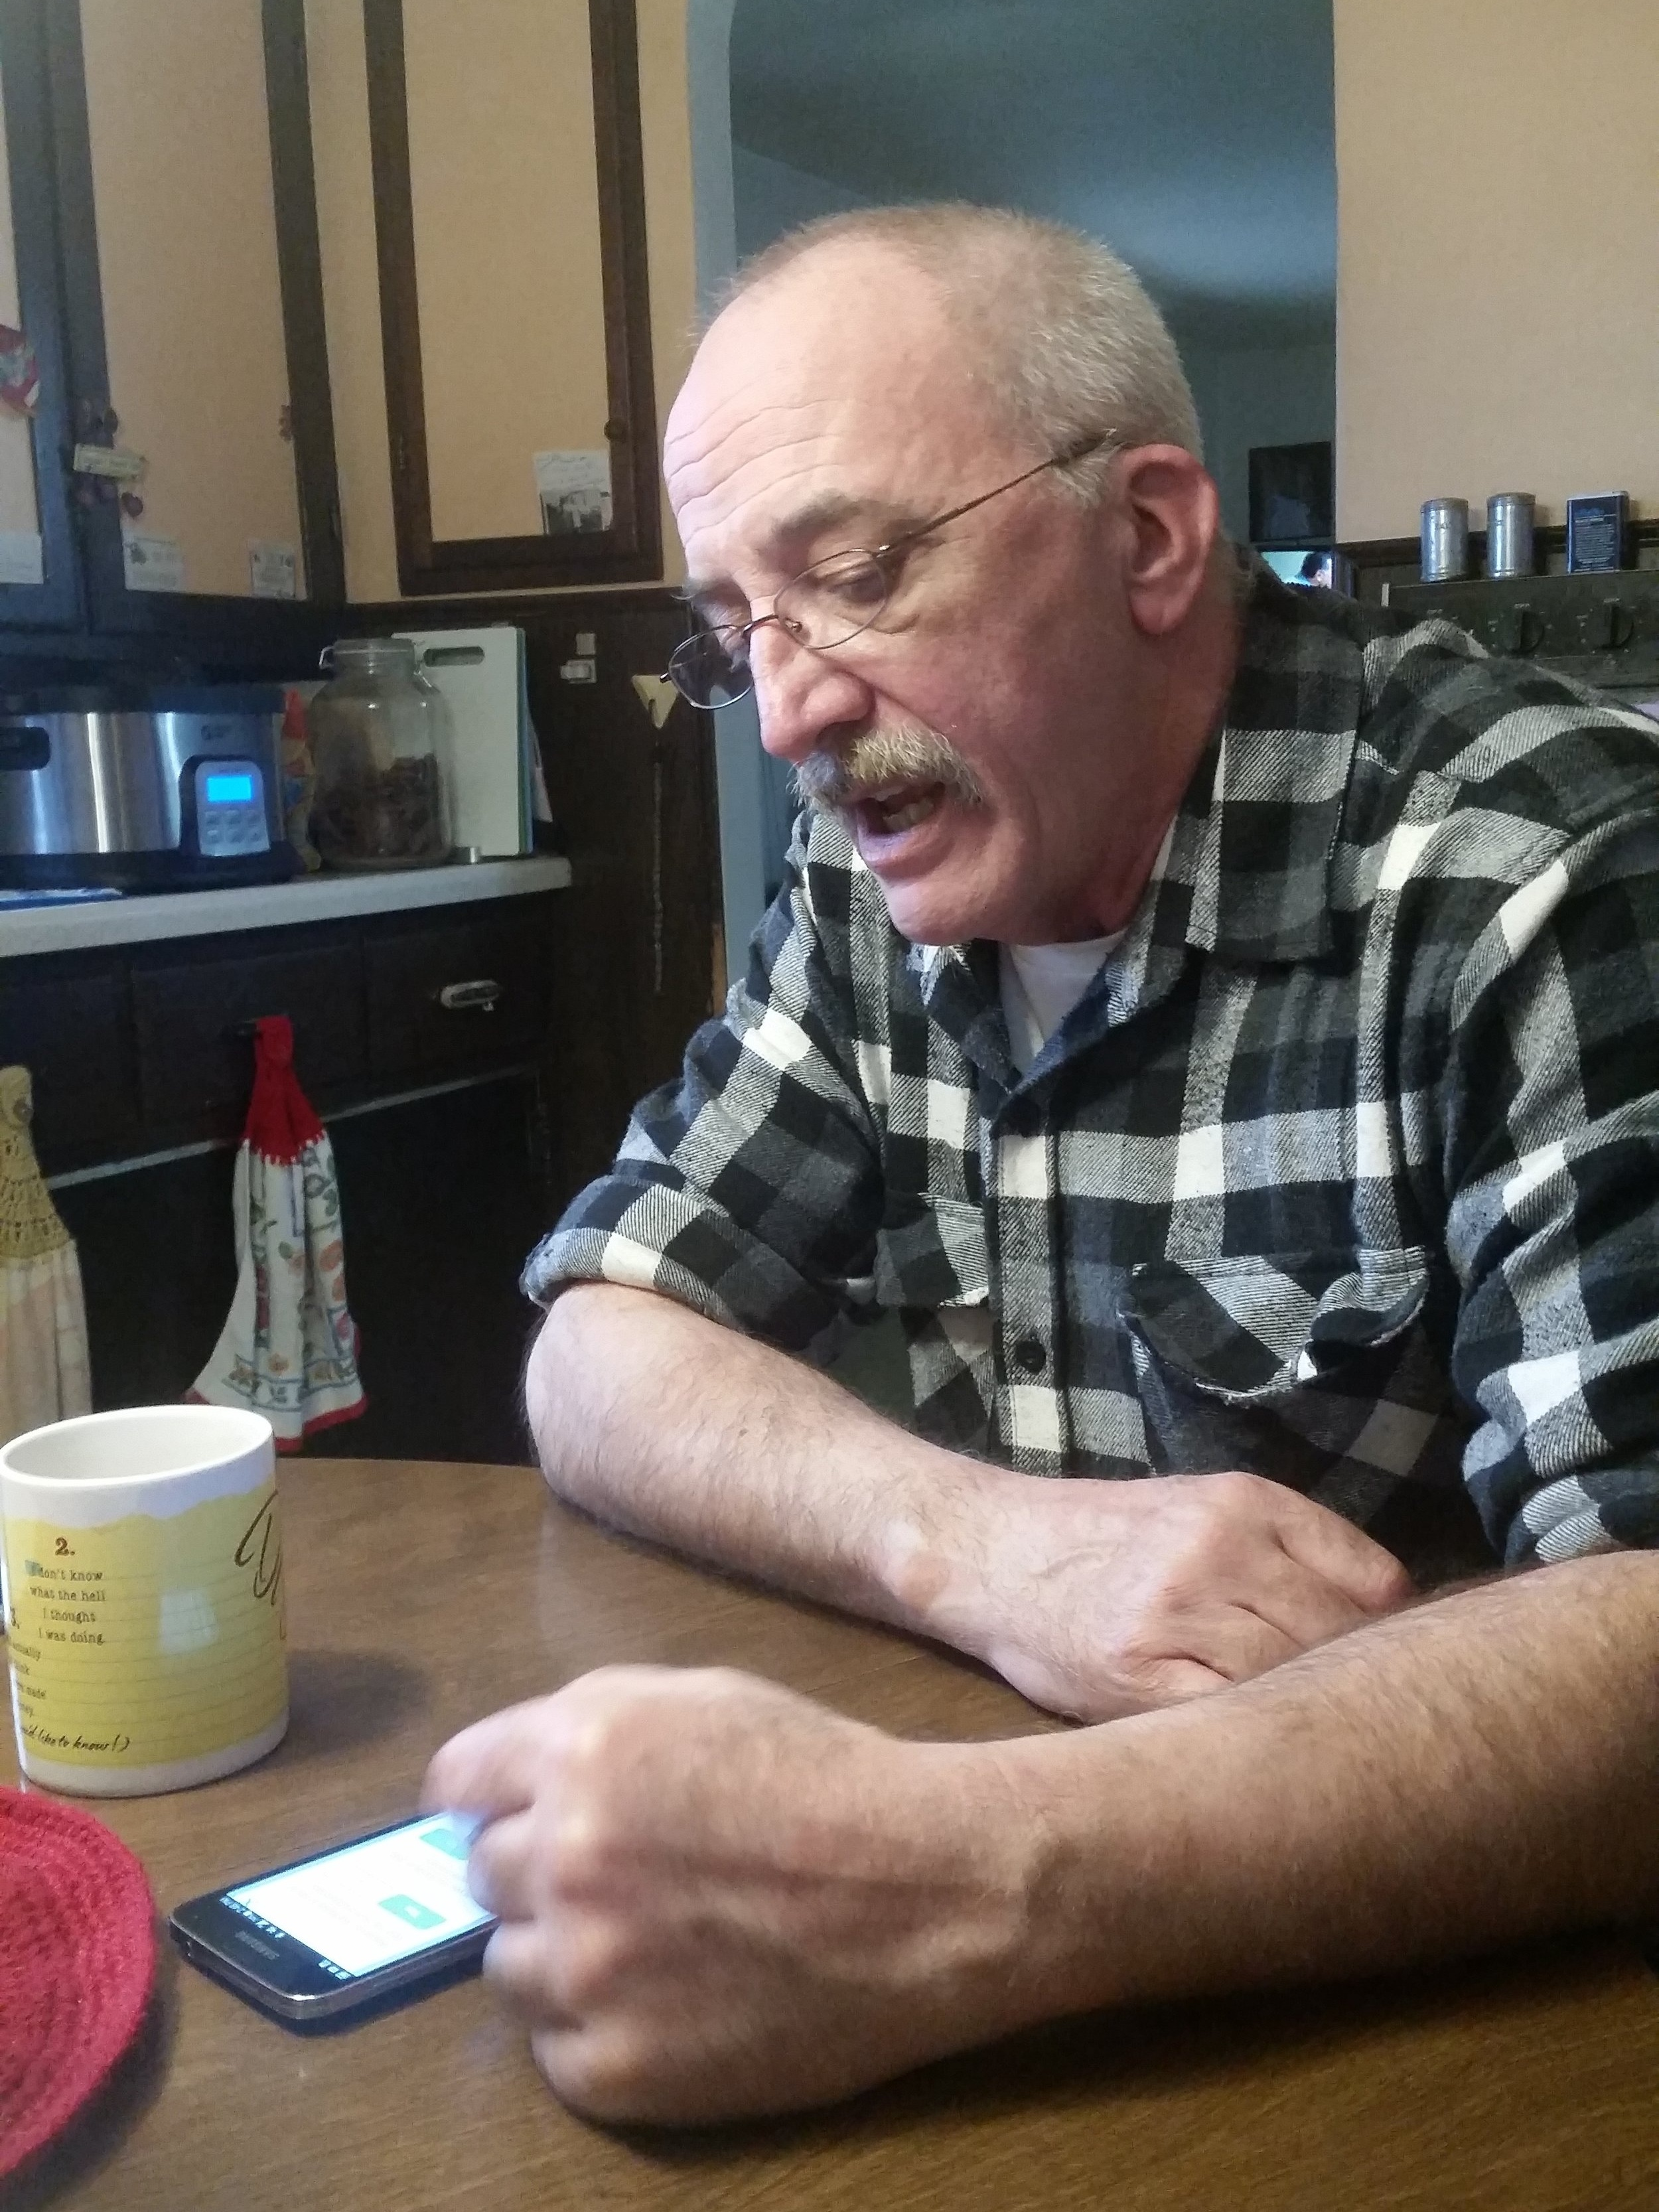 This caregiver takes care of his mother and uses Vela on his phone.